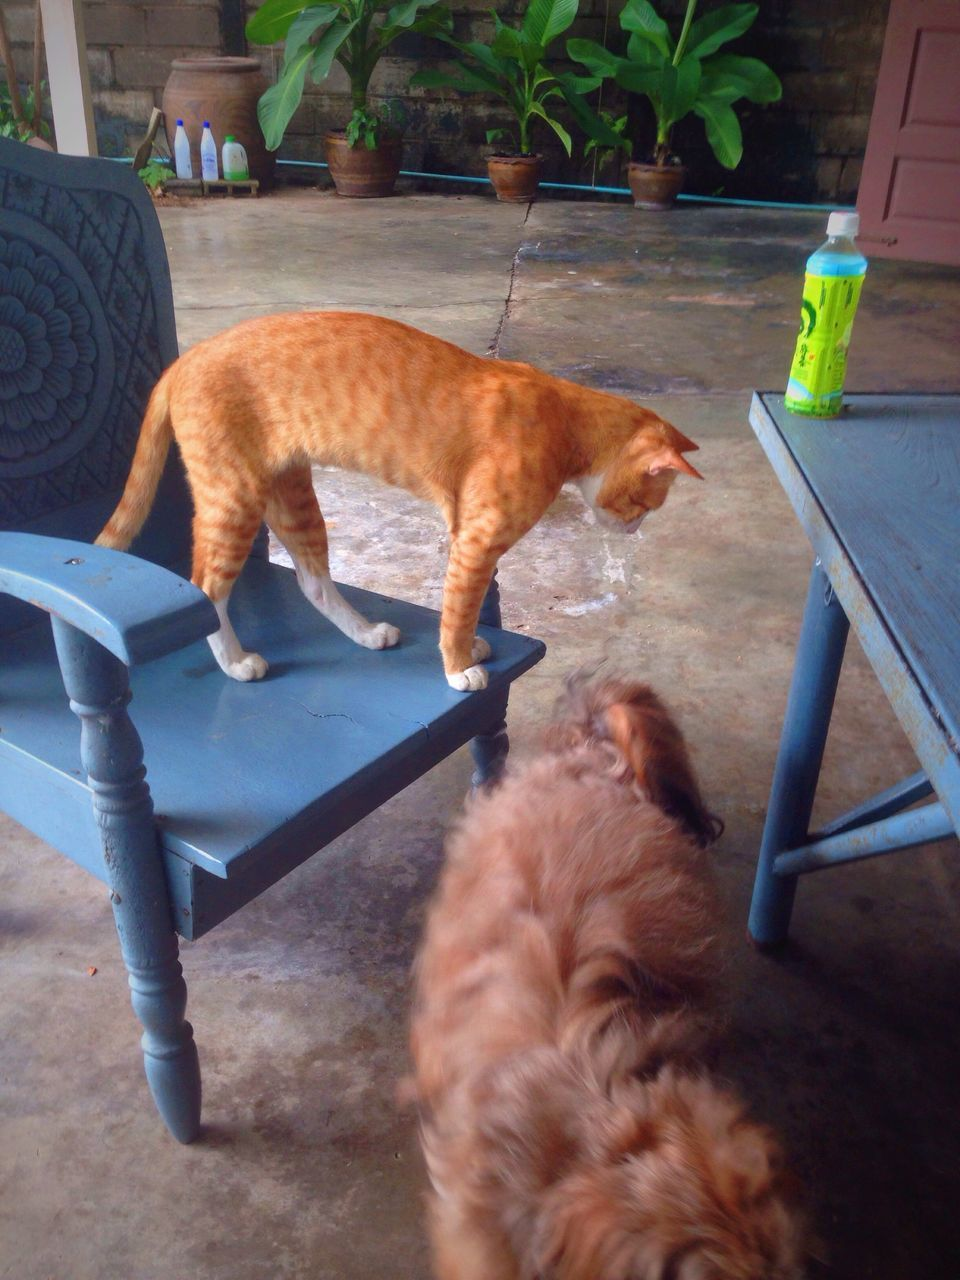 domestic animals, pets, mammal, animal themes, domestic cat, one animal, feline, dog, no people, ginger cat, day, indoors